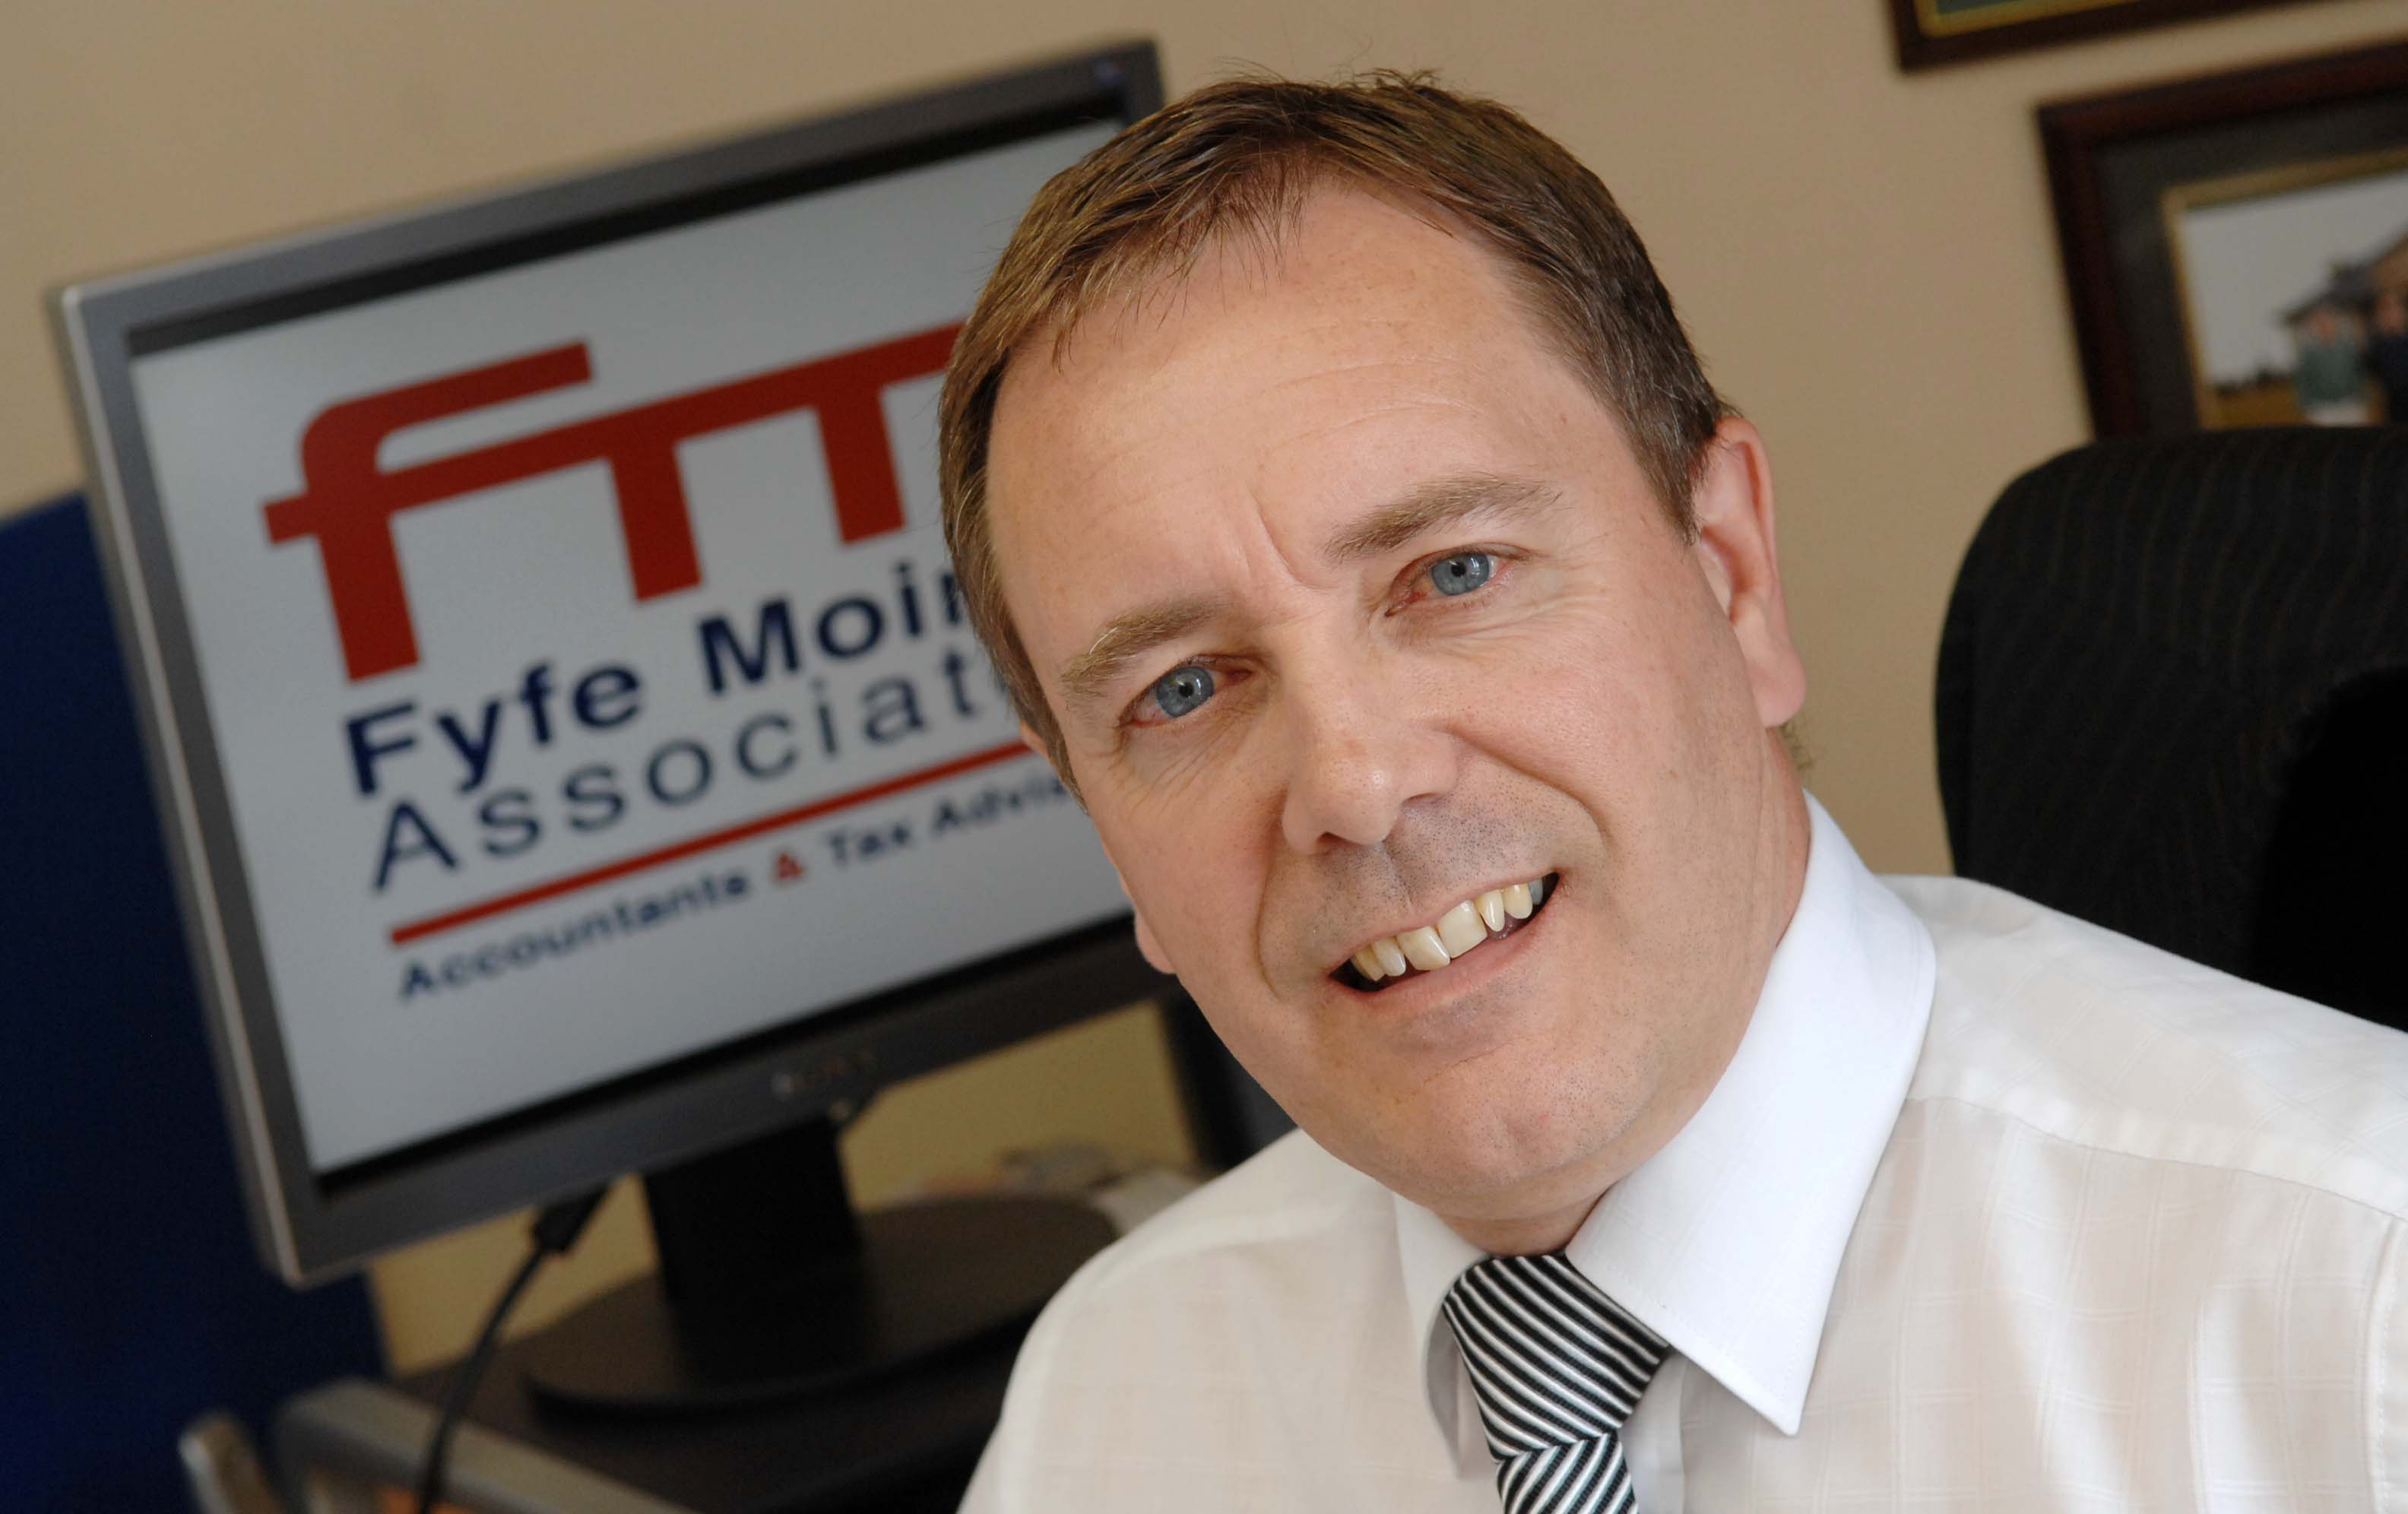 Fyfe Moir and Associates Director Alan Moir.